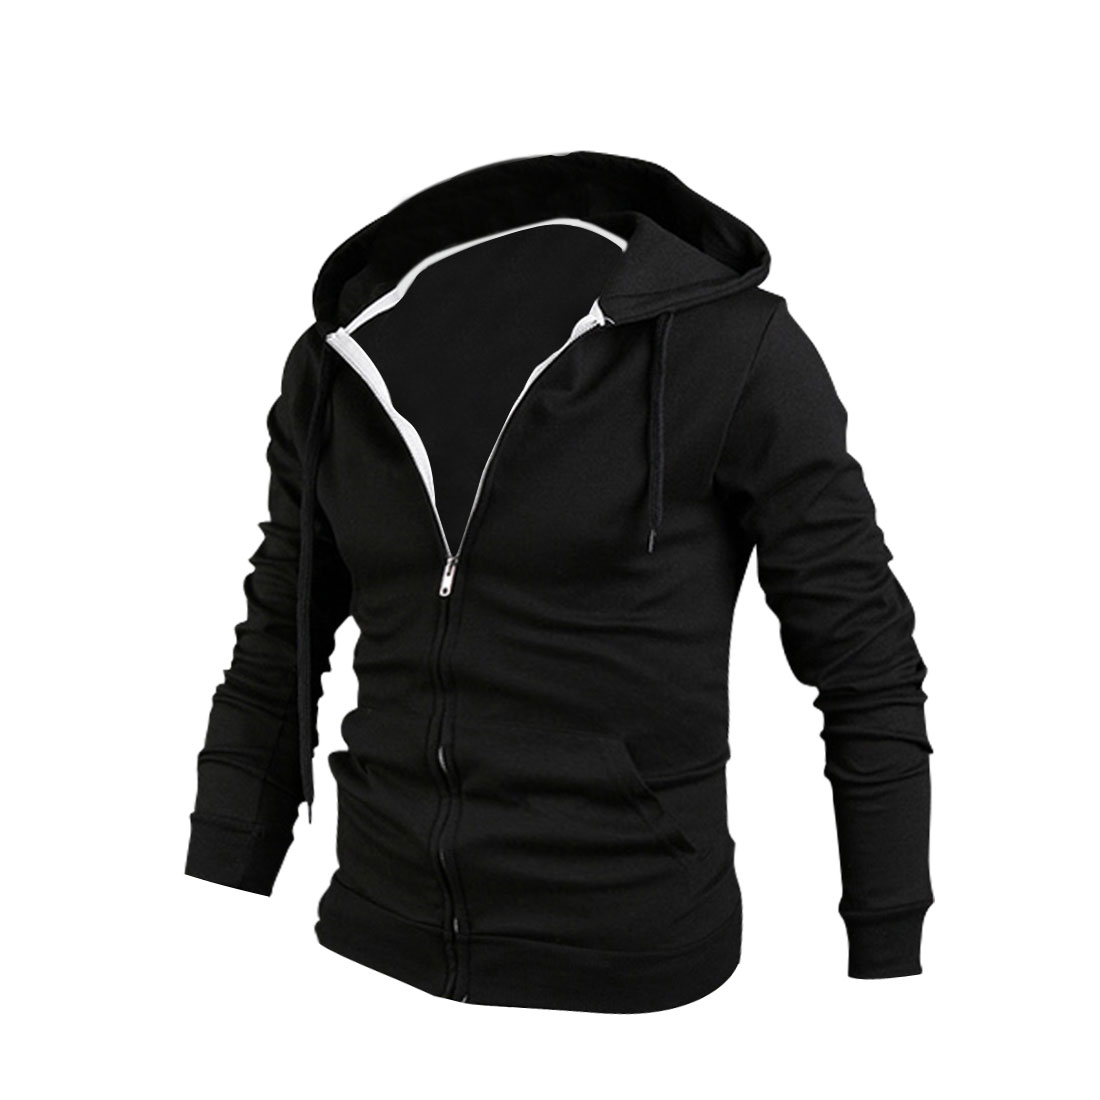 Men Zip Closure Slant Pockets Front Hoodies Black M